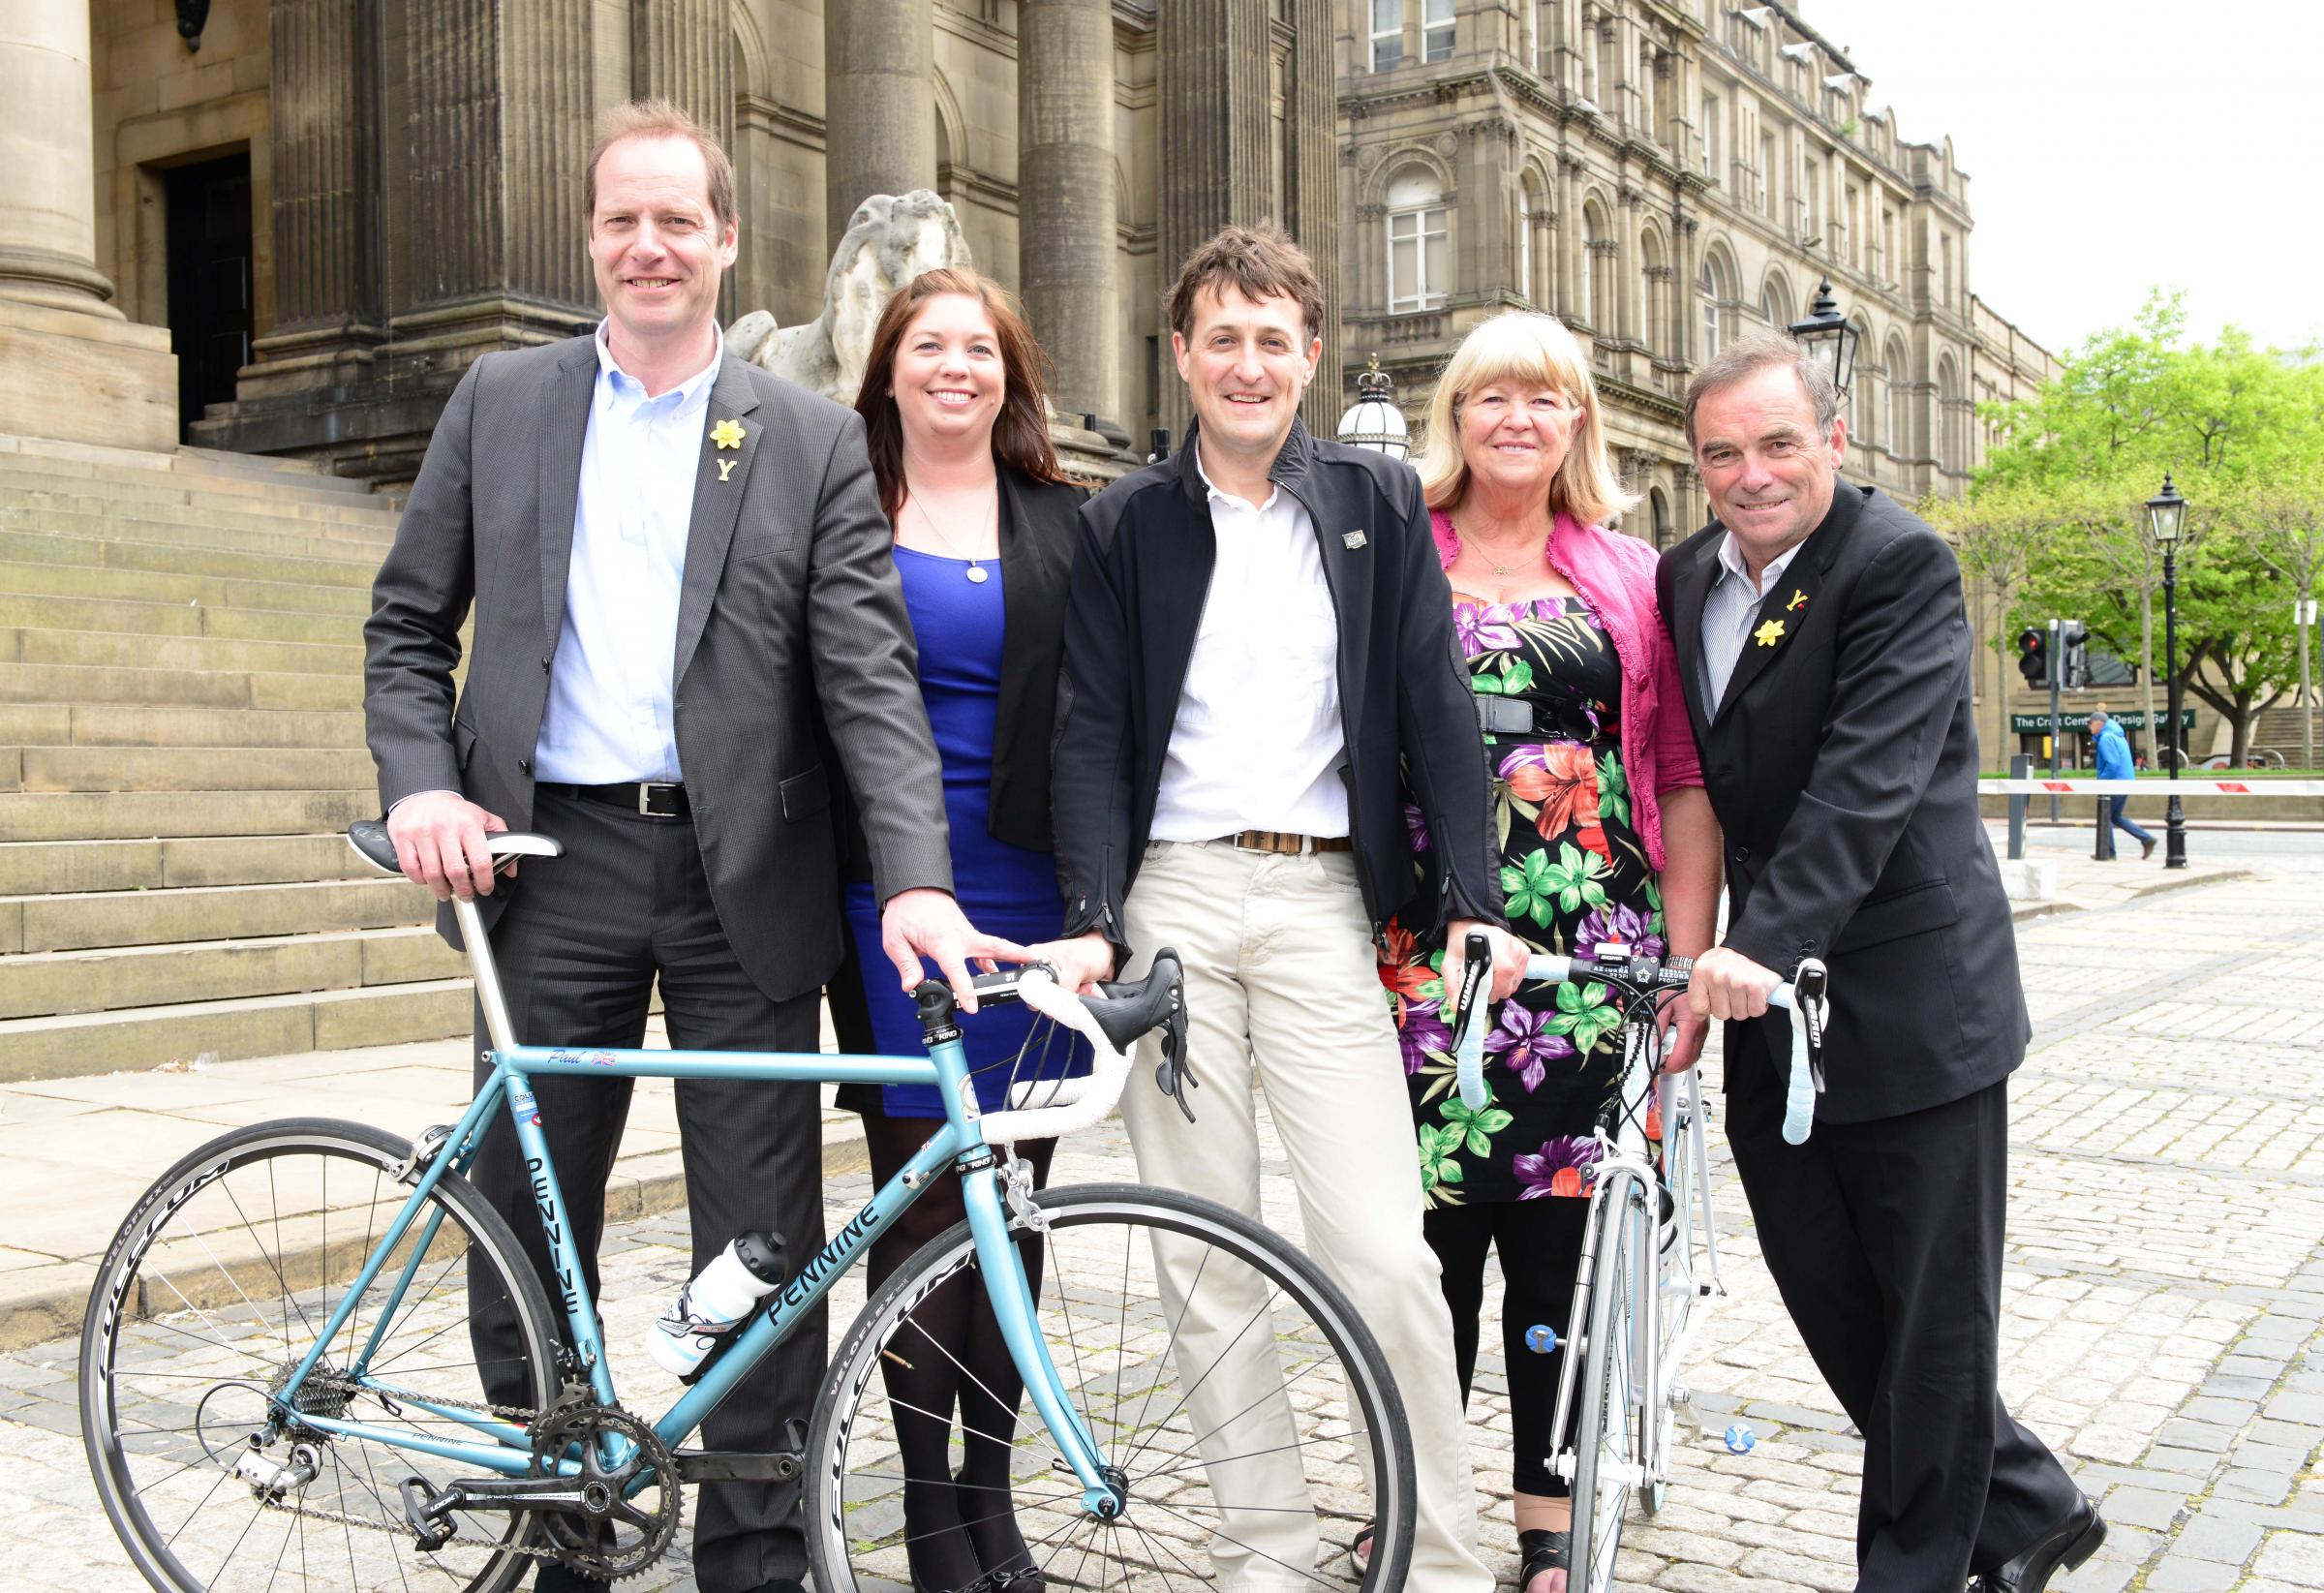 Paul Corcoran, centre, and Sandra Corcoran, second from right, owners of Pennine Cycles, with – from left – Tour de France director Christian Prudhomme, Caroline